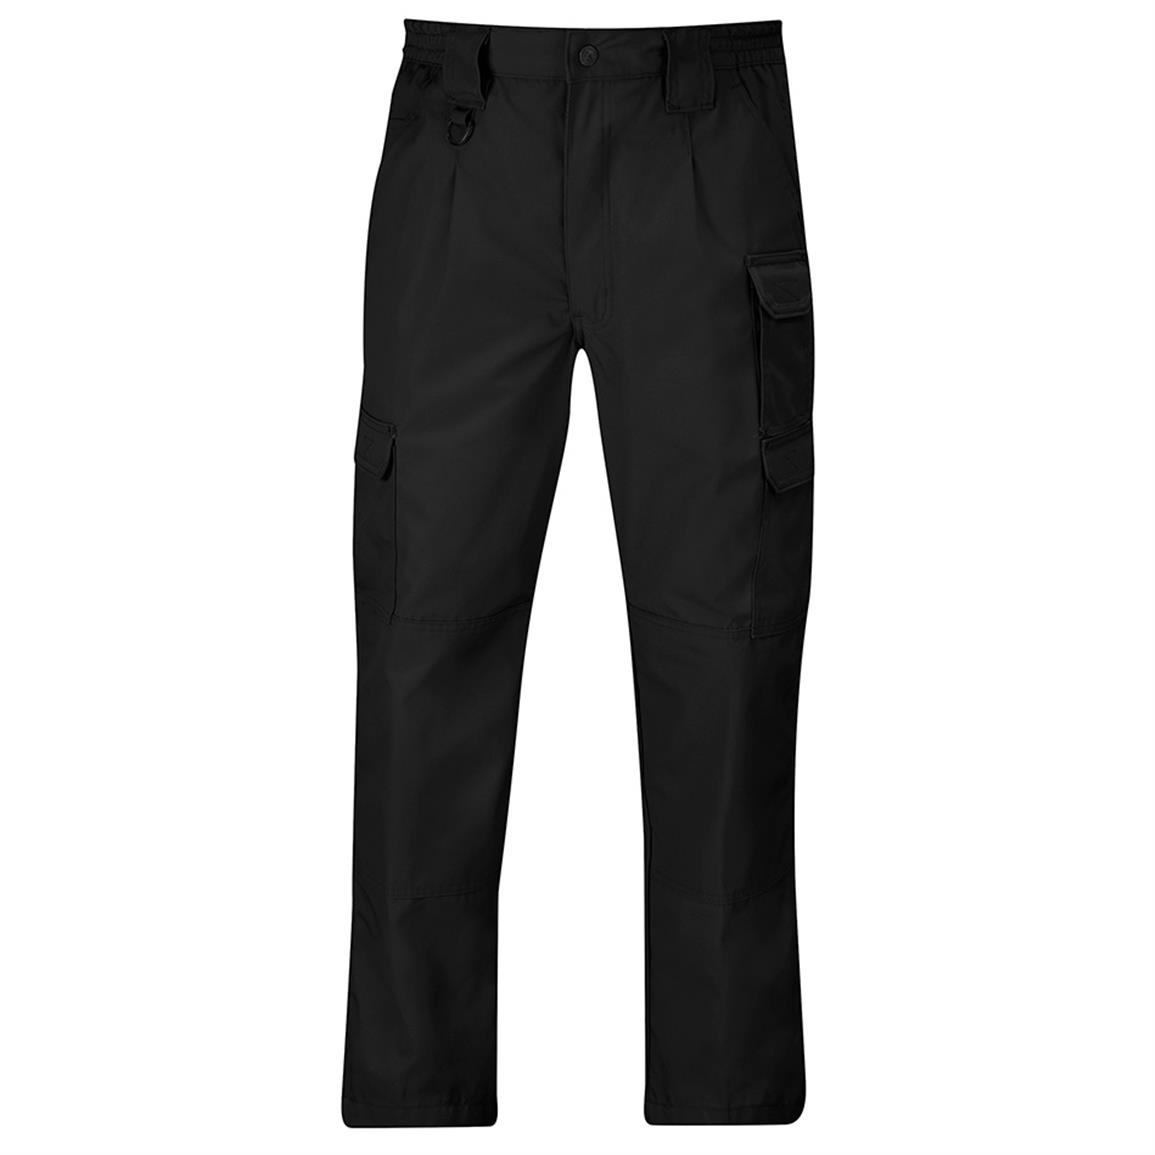 Propper Men's Canvas Tactical Pants, Black